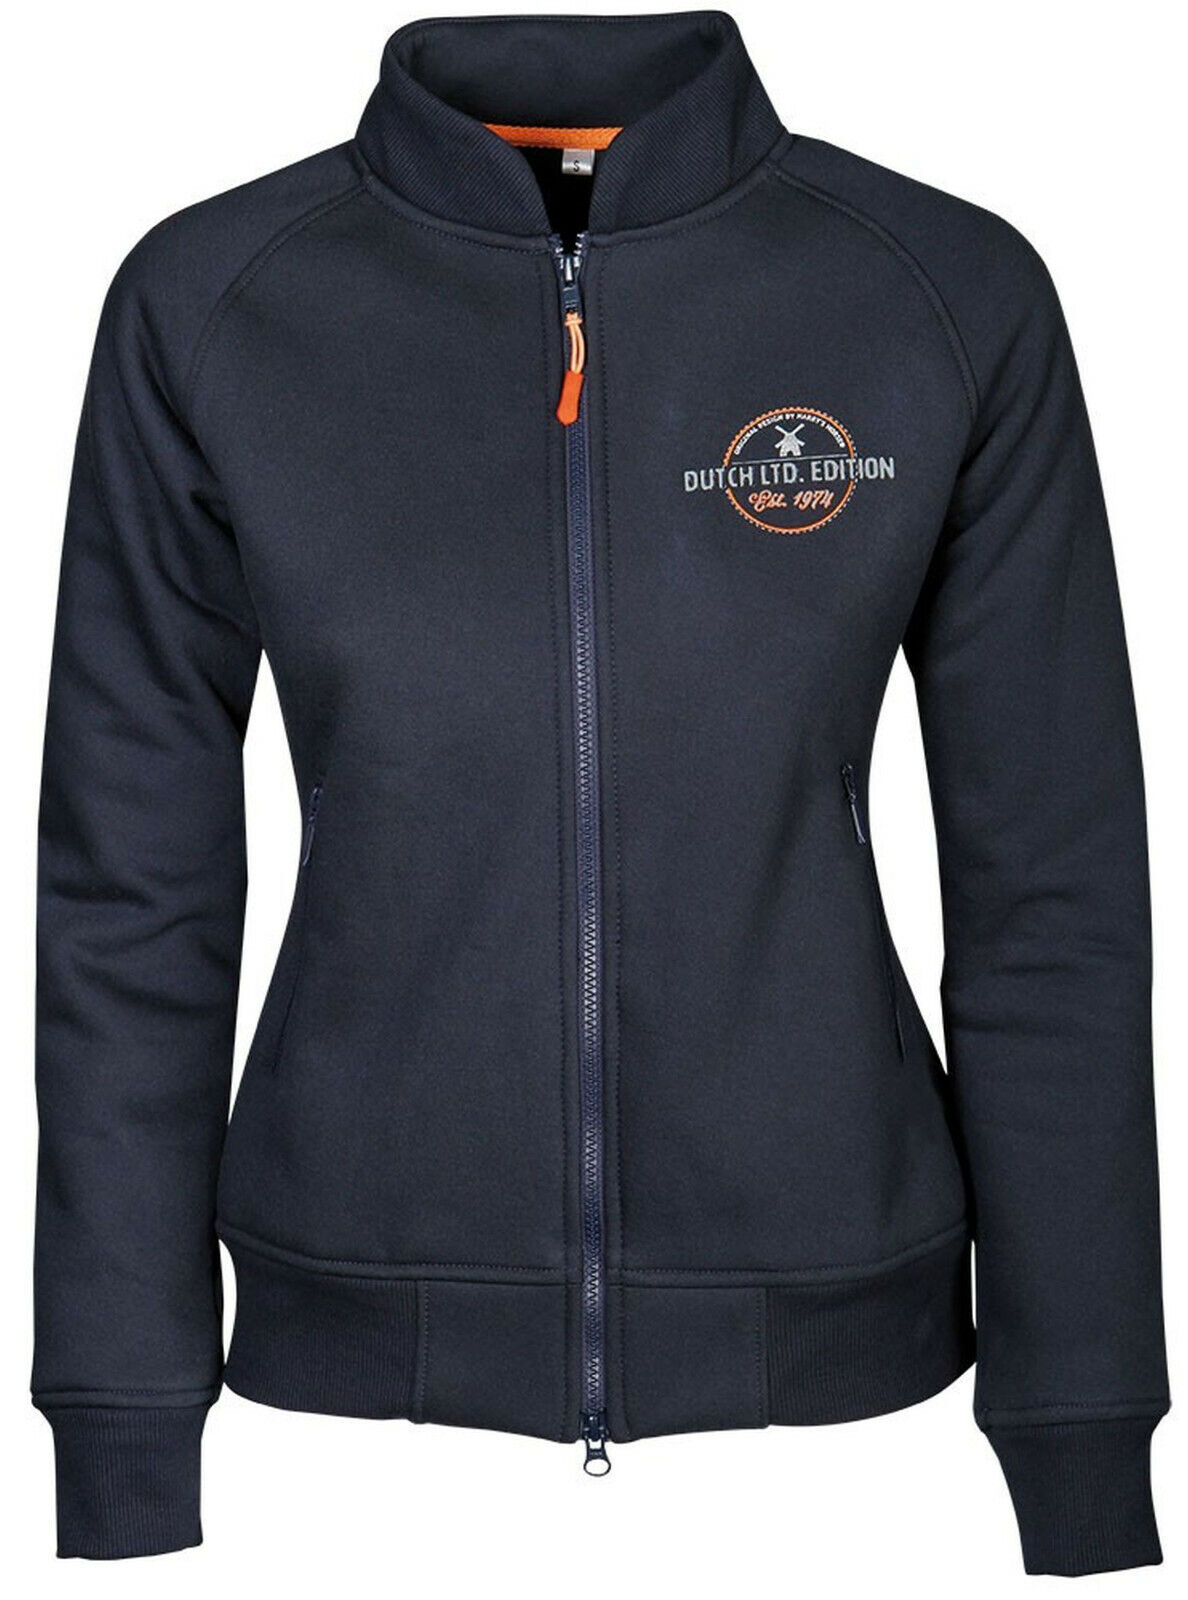 Harry's Horse Damen Bomberjacke Dutch ltd. Edition dekorative Details